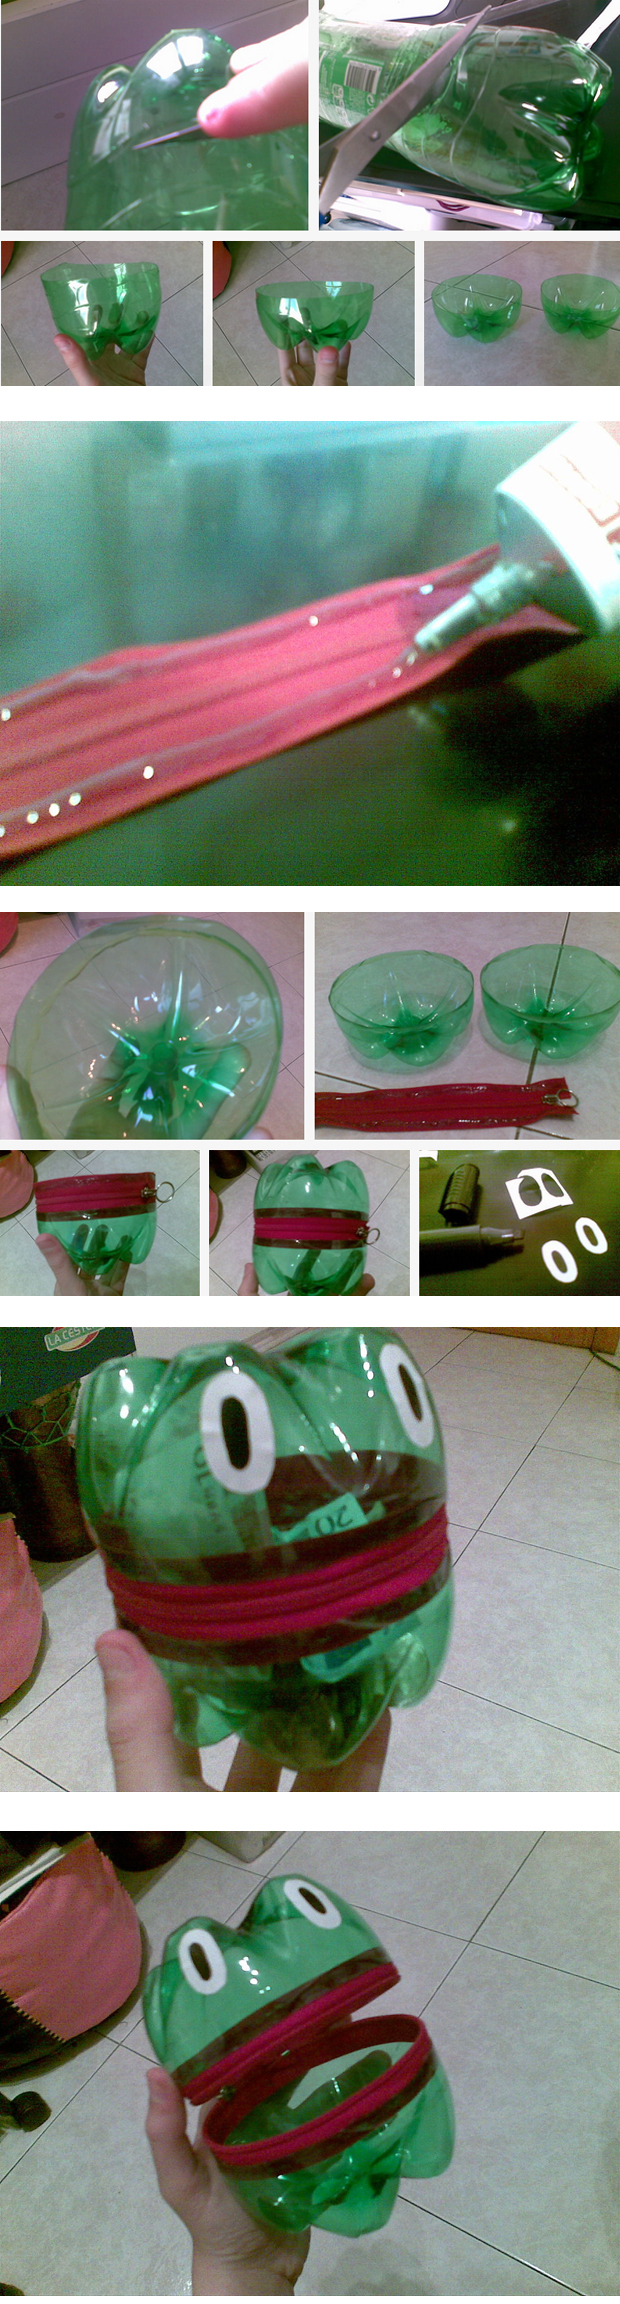 6 best ideas for using old waste plastic bottles crafts for Waste material craft ideas in hindi